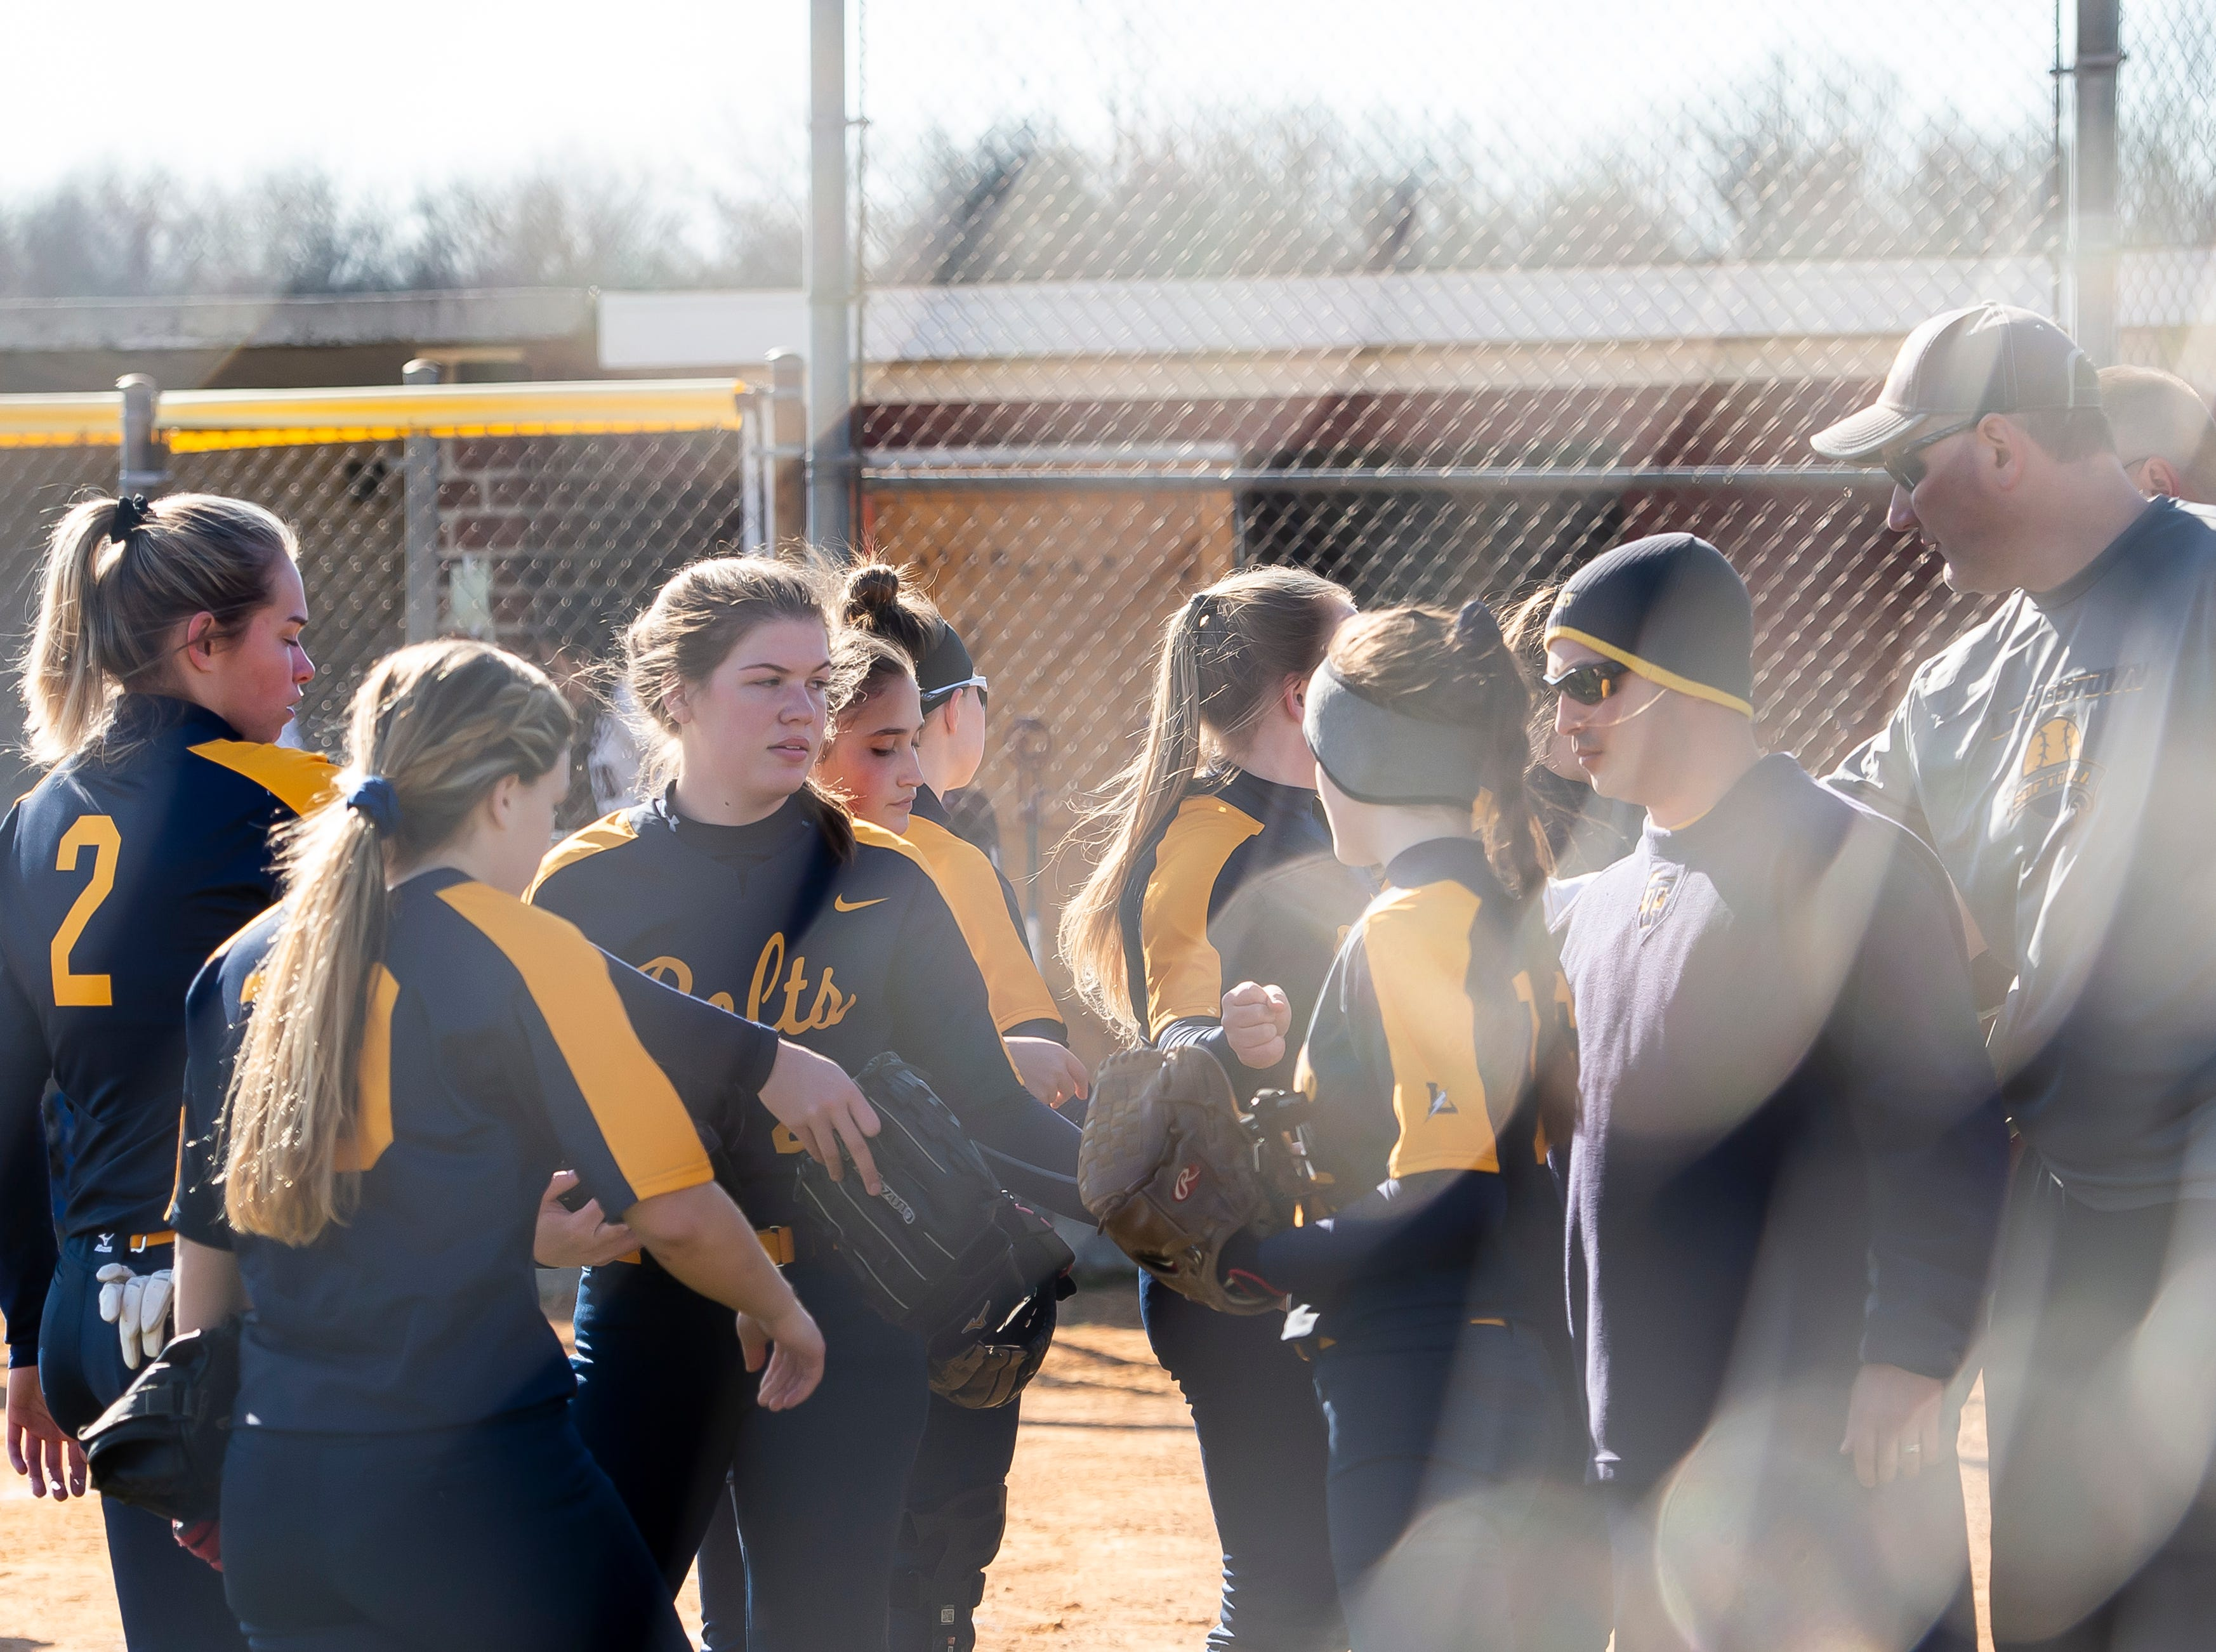 Littlestown players and coaches talk together outside the dugout between innings of a YAIAA softball game against Gettysburg on Monday, April 1, 2019. The Bolts won 10-4.